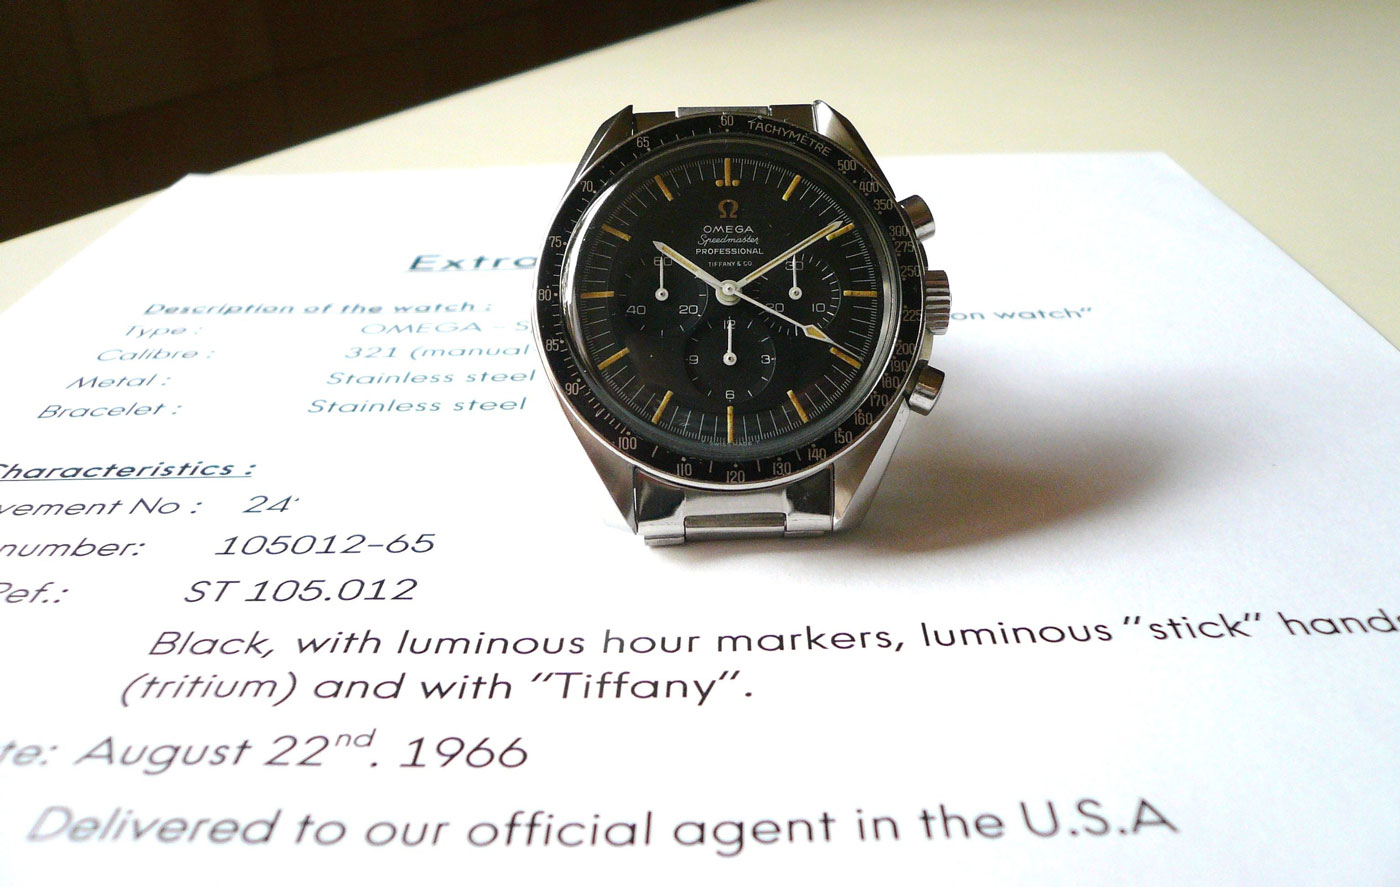 A Tiffany stamped Speedmaster ref. 105.012 with extract from Omega certifying its authenticity (Image from omegaforums.net posted by doctor steel)